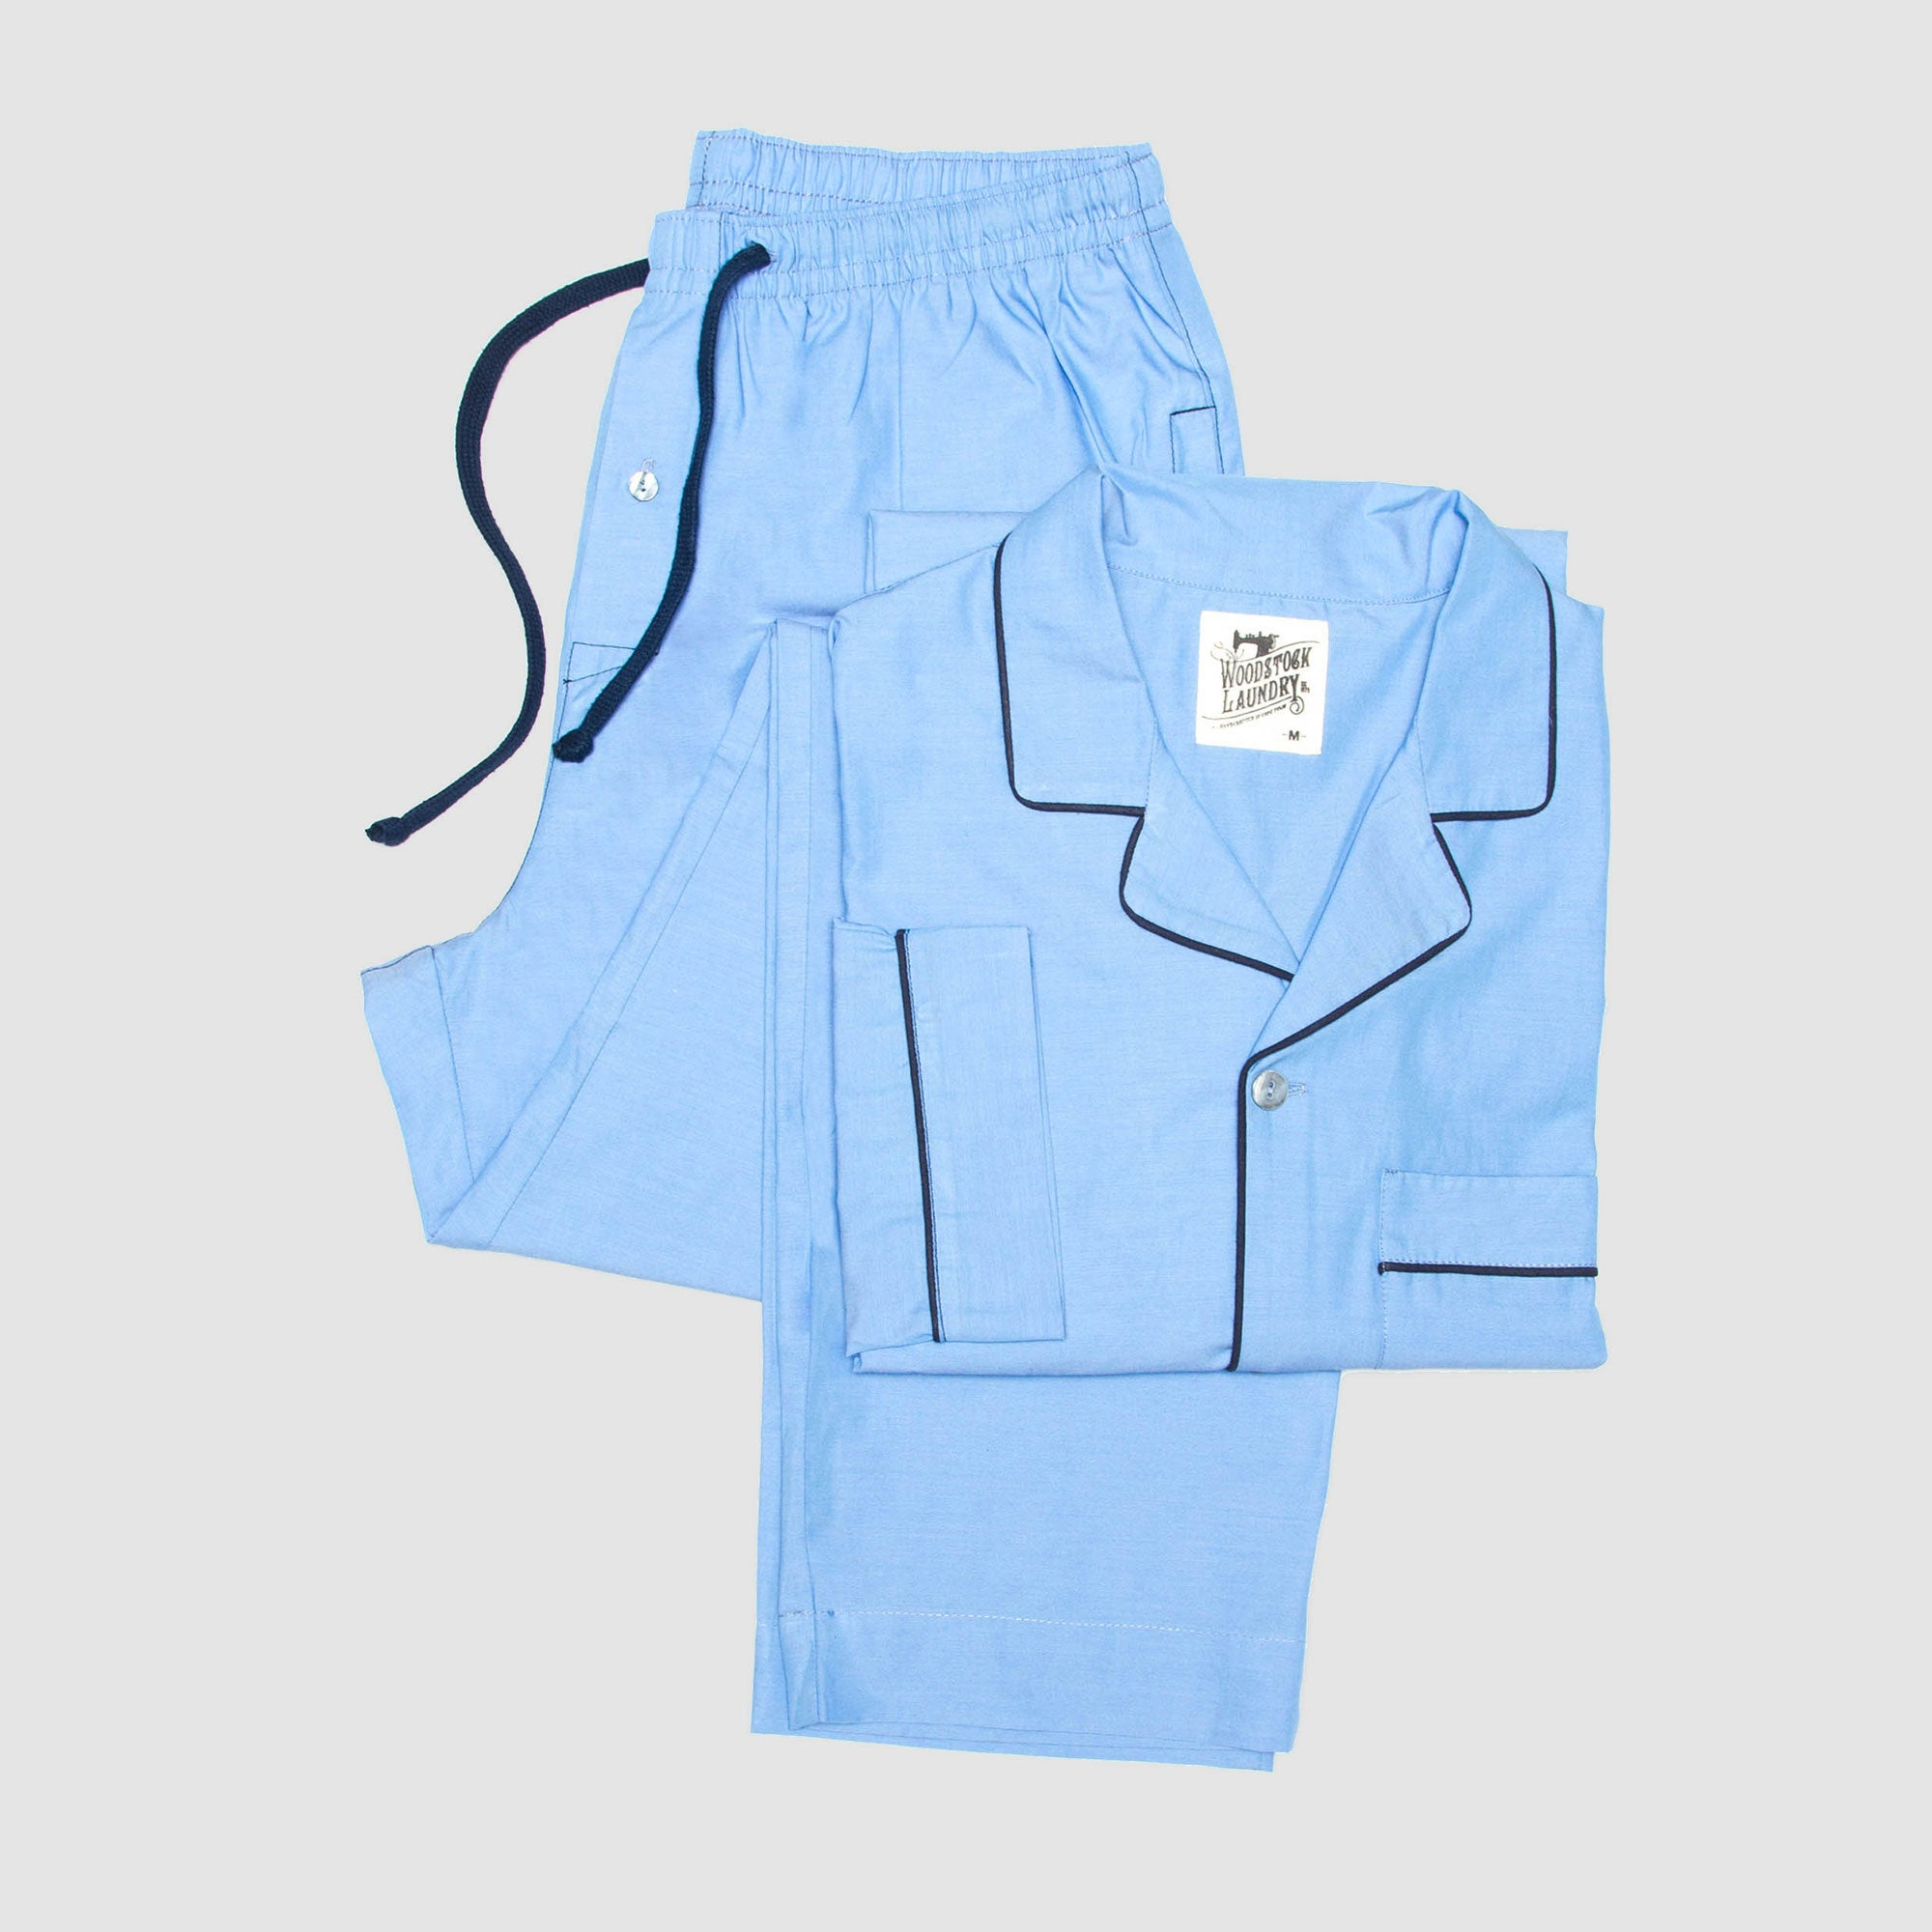 Pyjamas Chambray Light Blue with Navy Piping